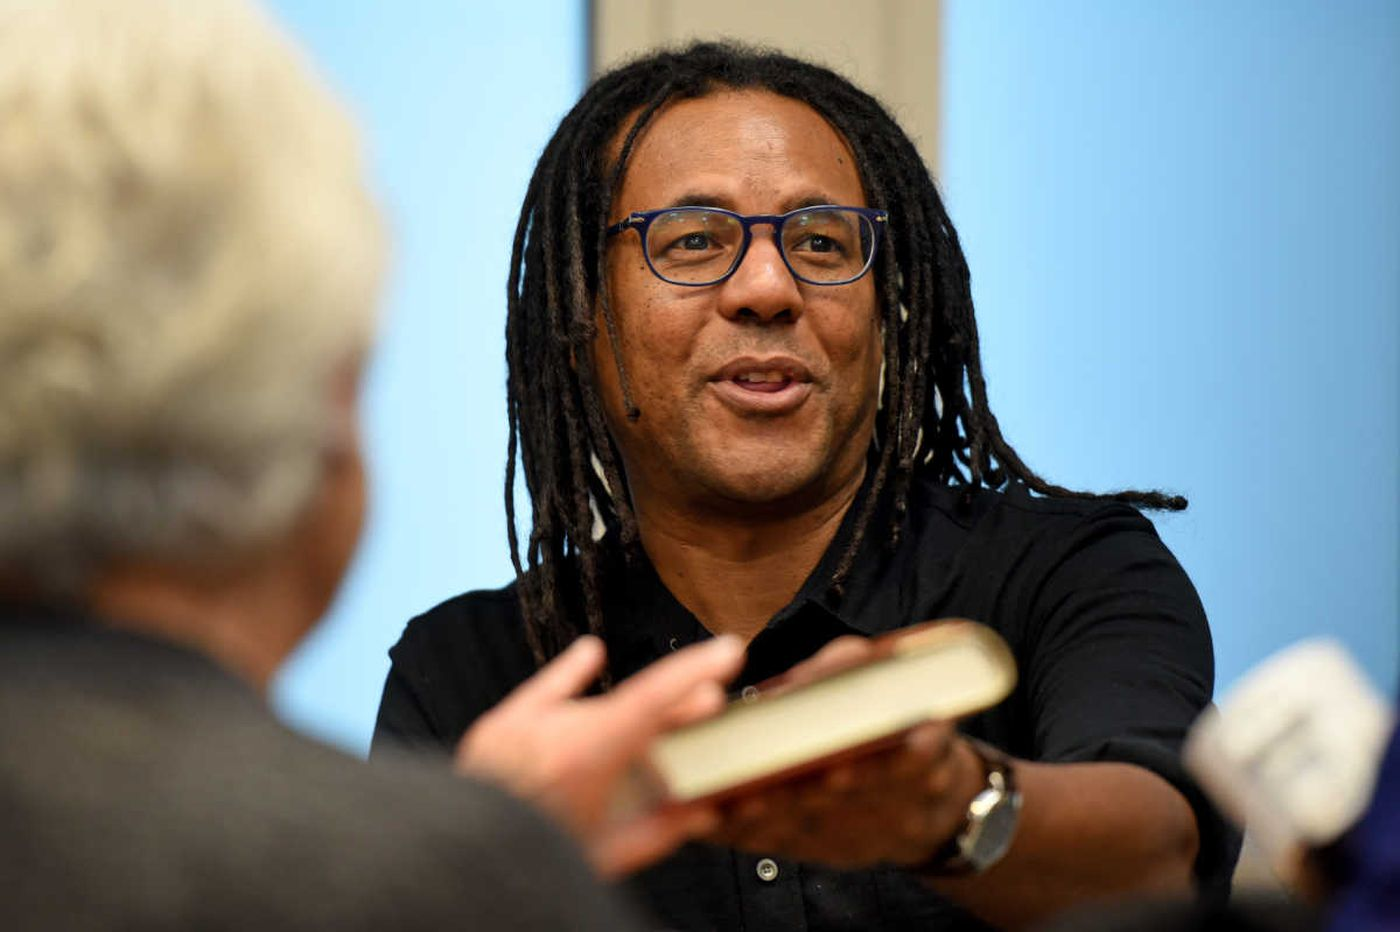 All aboard: author Colson Whitehead a hit in Lower Merion